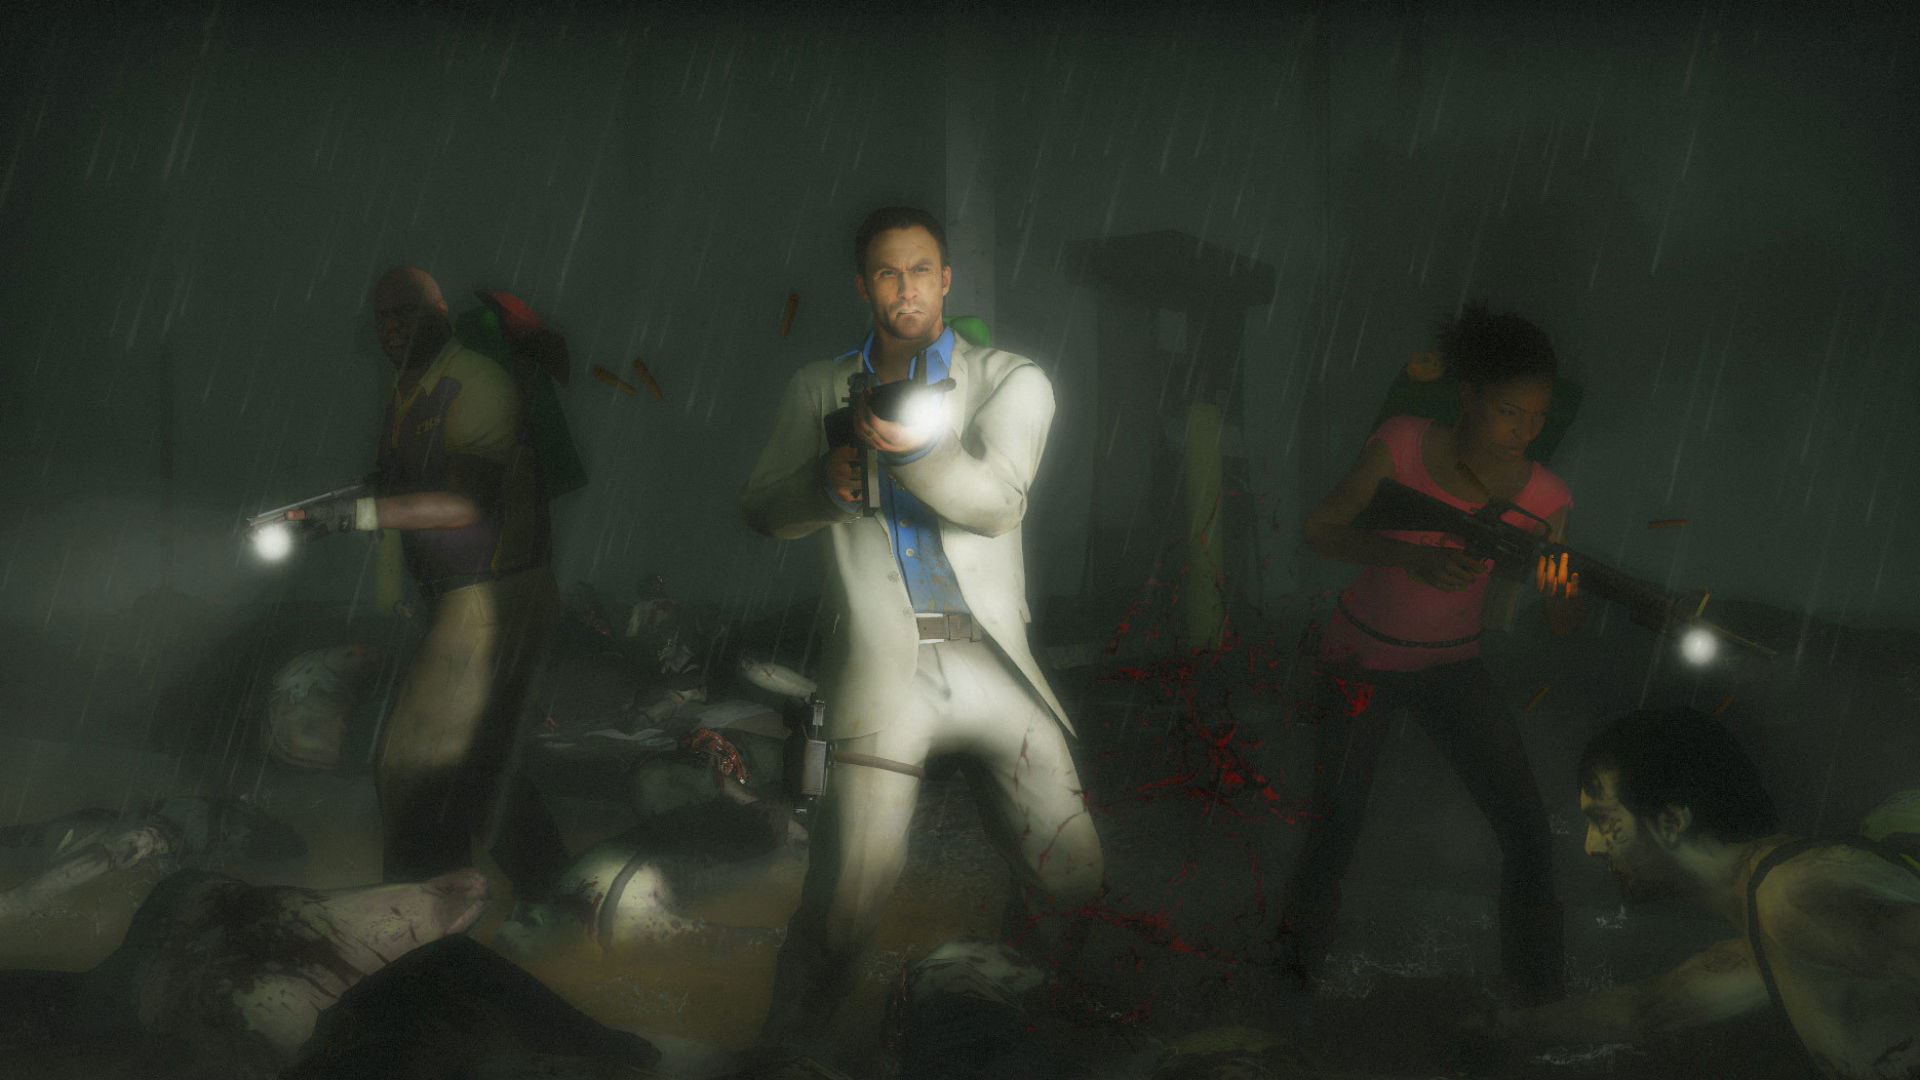 Left 4 Dead 3 release date: will we see the game in 2019